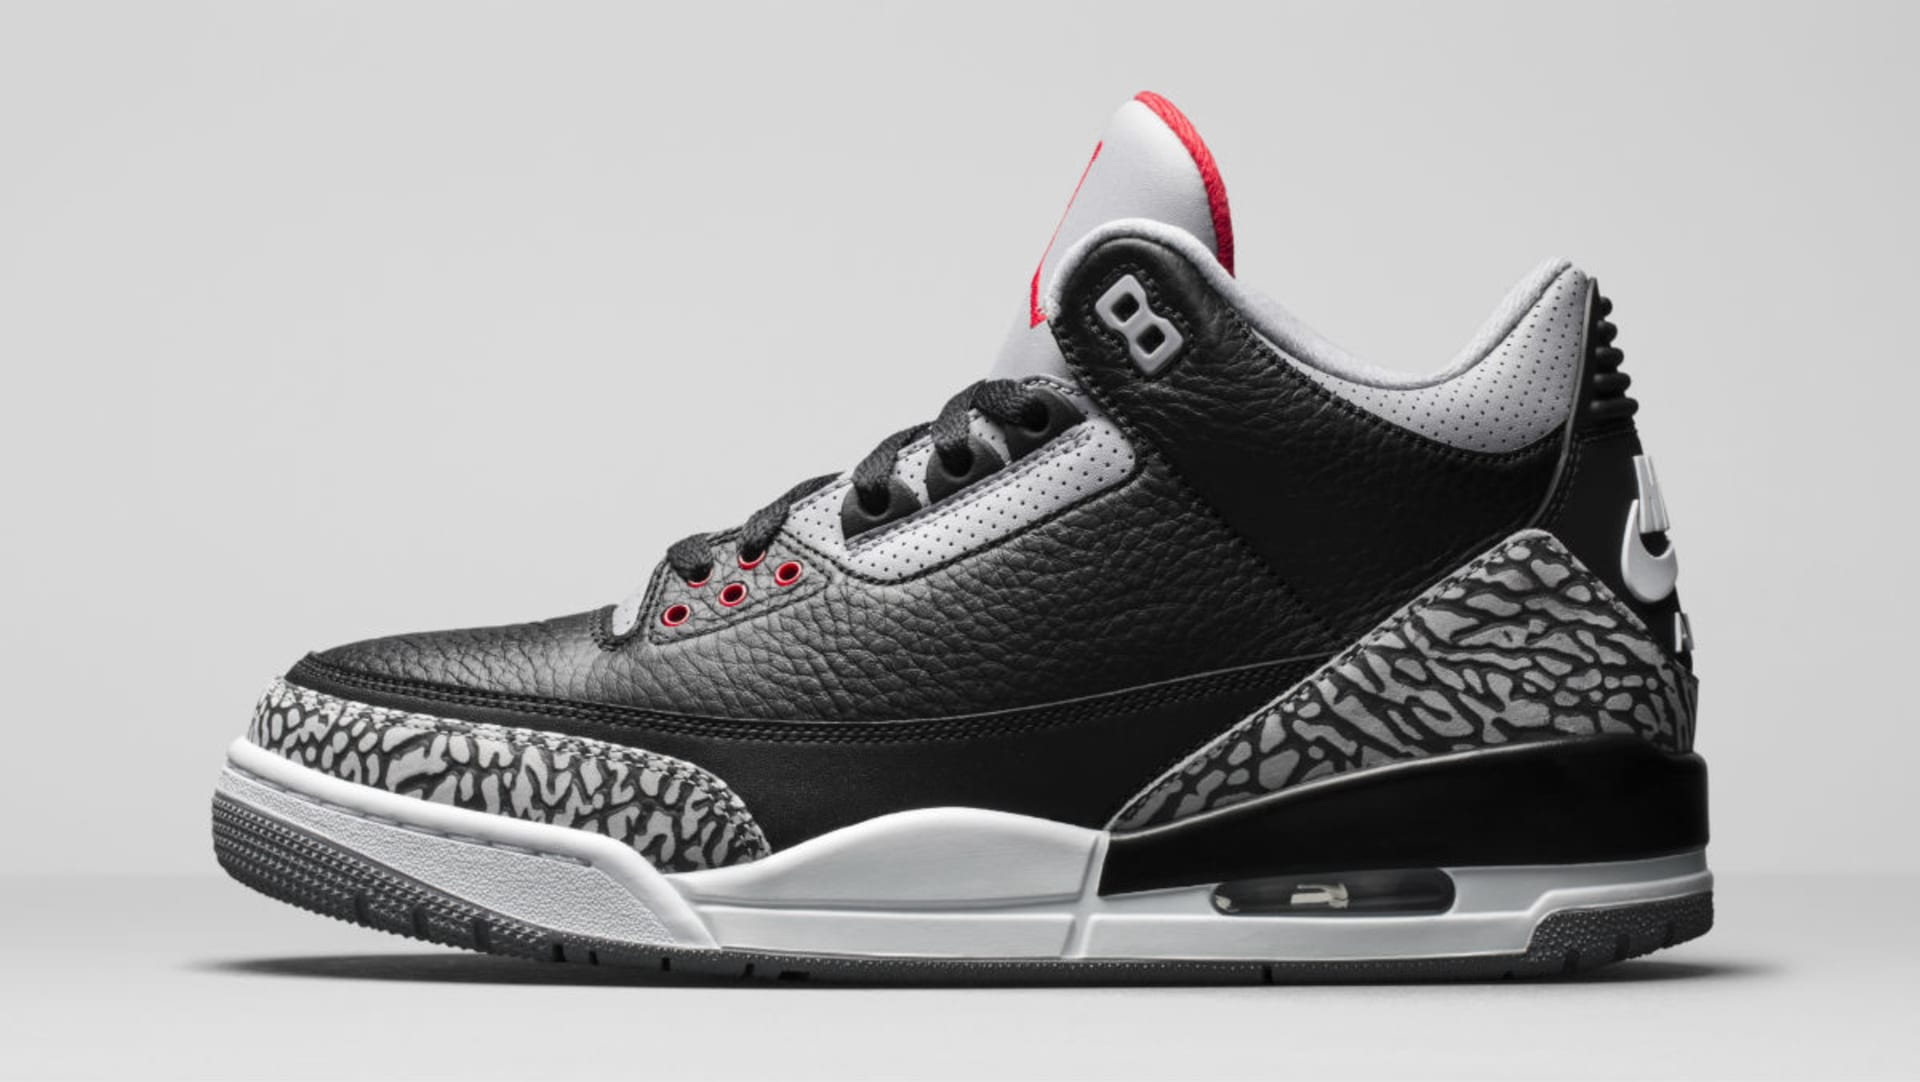 43ebff9a294 Air Jordan 3 III Black Cement Release Date 854262-001 Profile